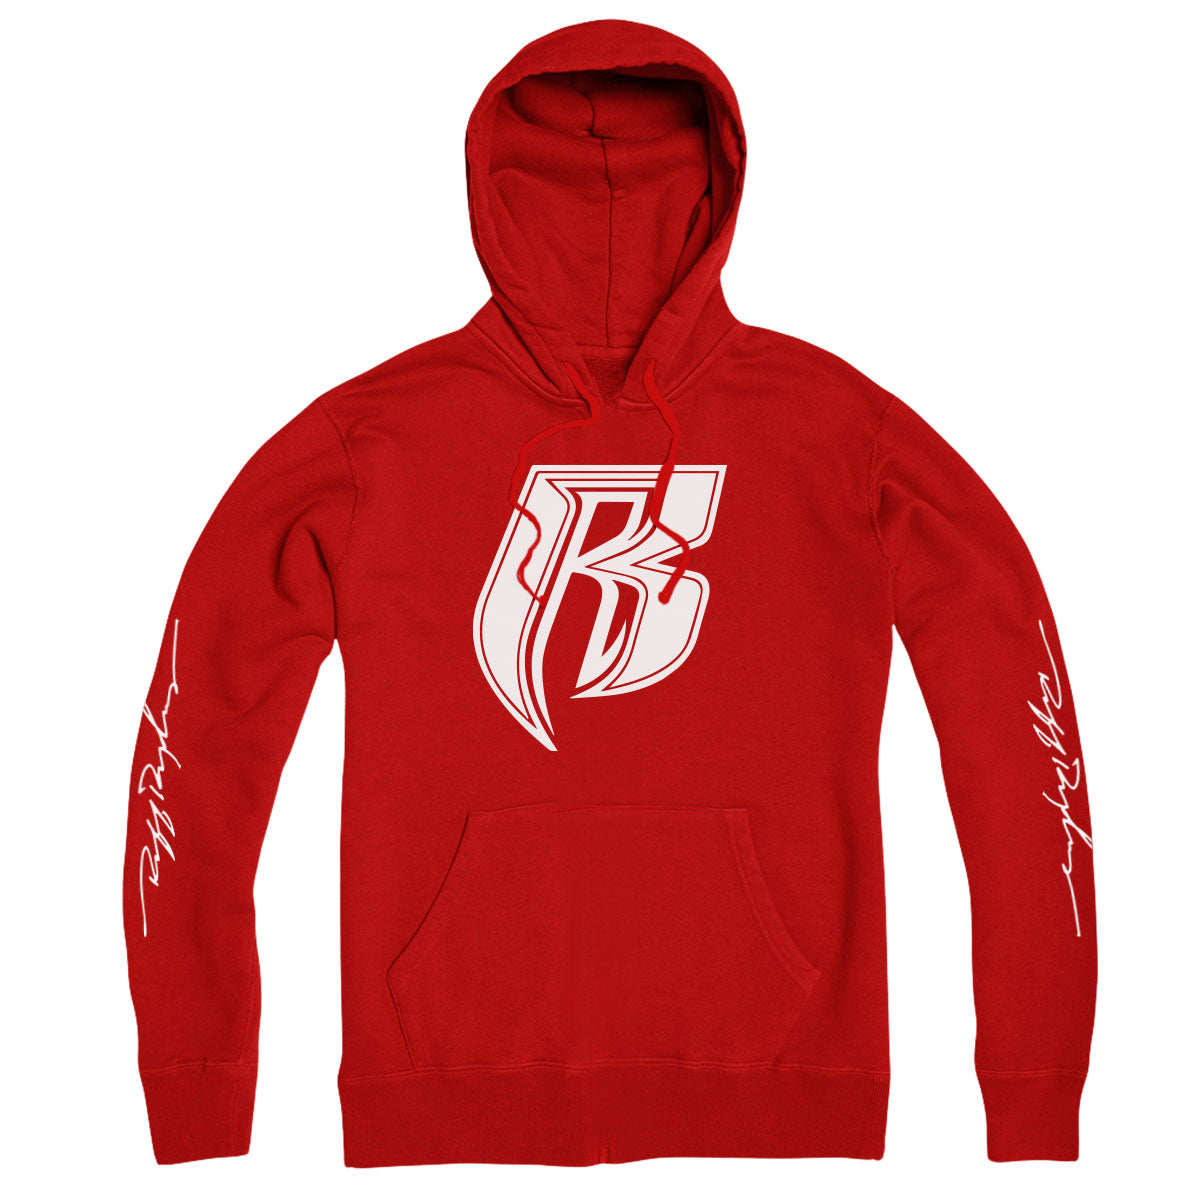 RR Icon Signature Hoodie - Red